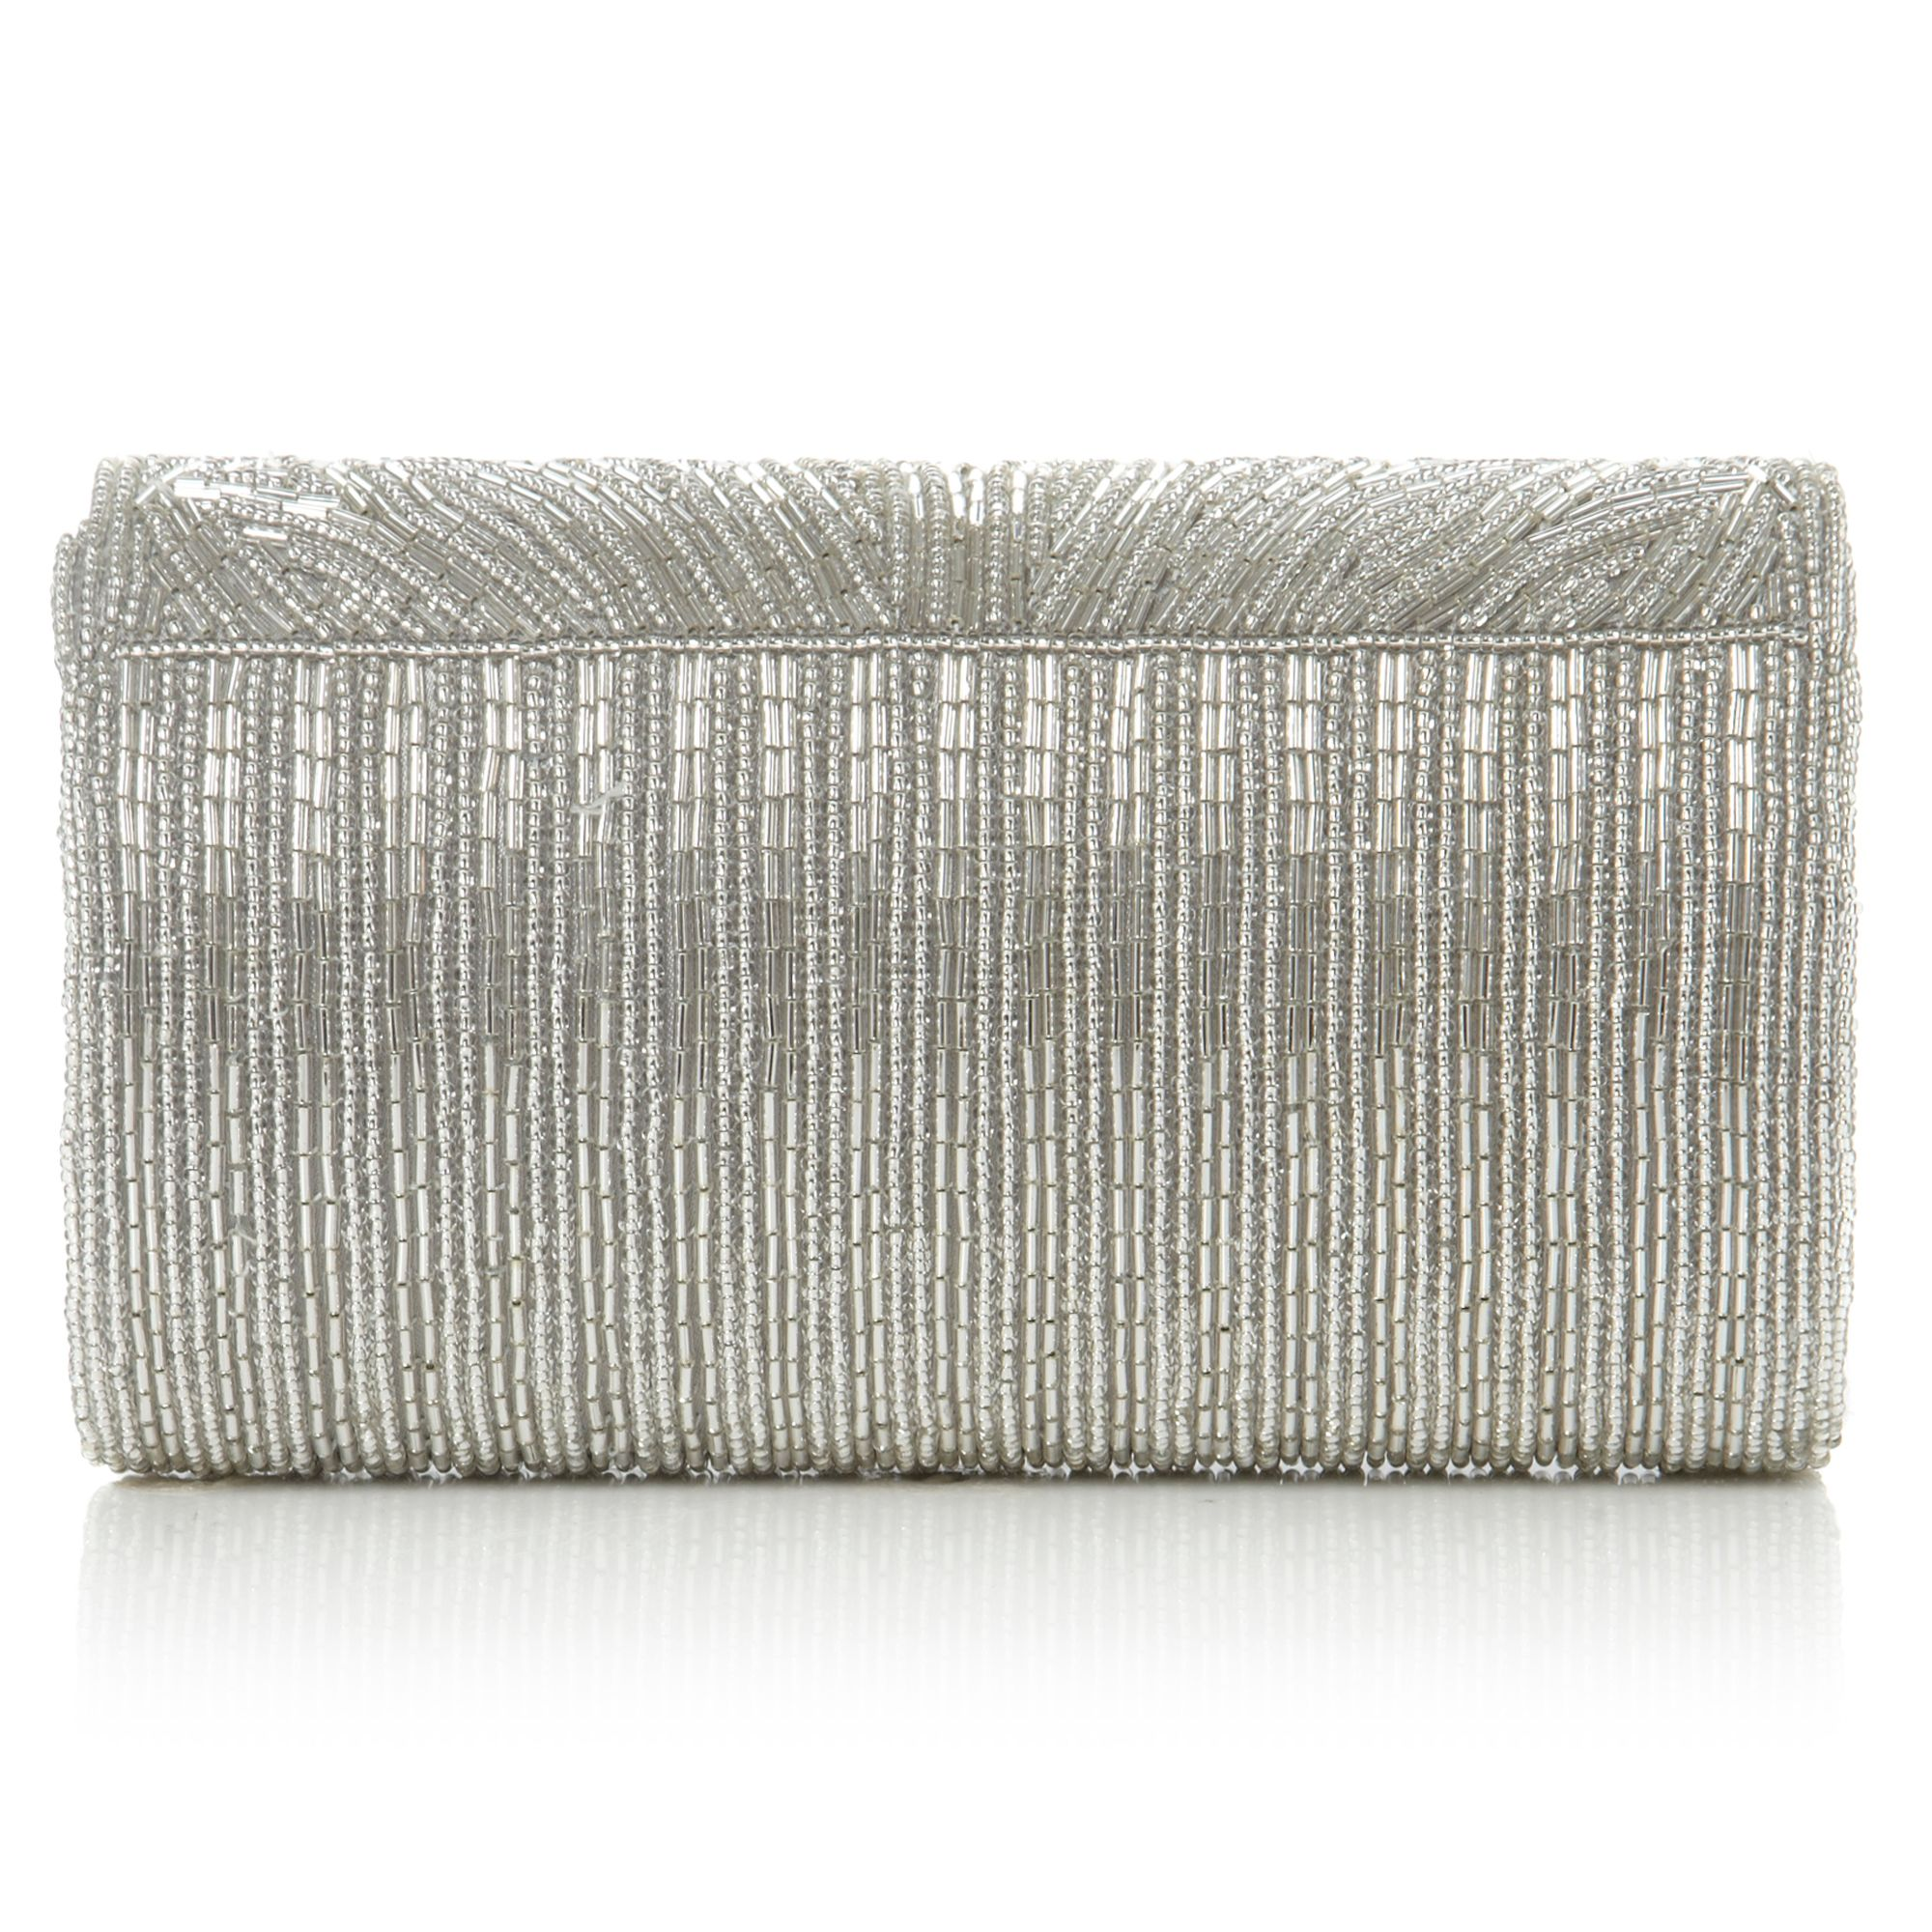 Egical cylinder beaded clutch bag